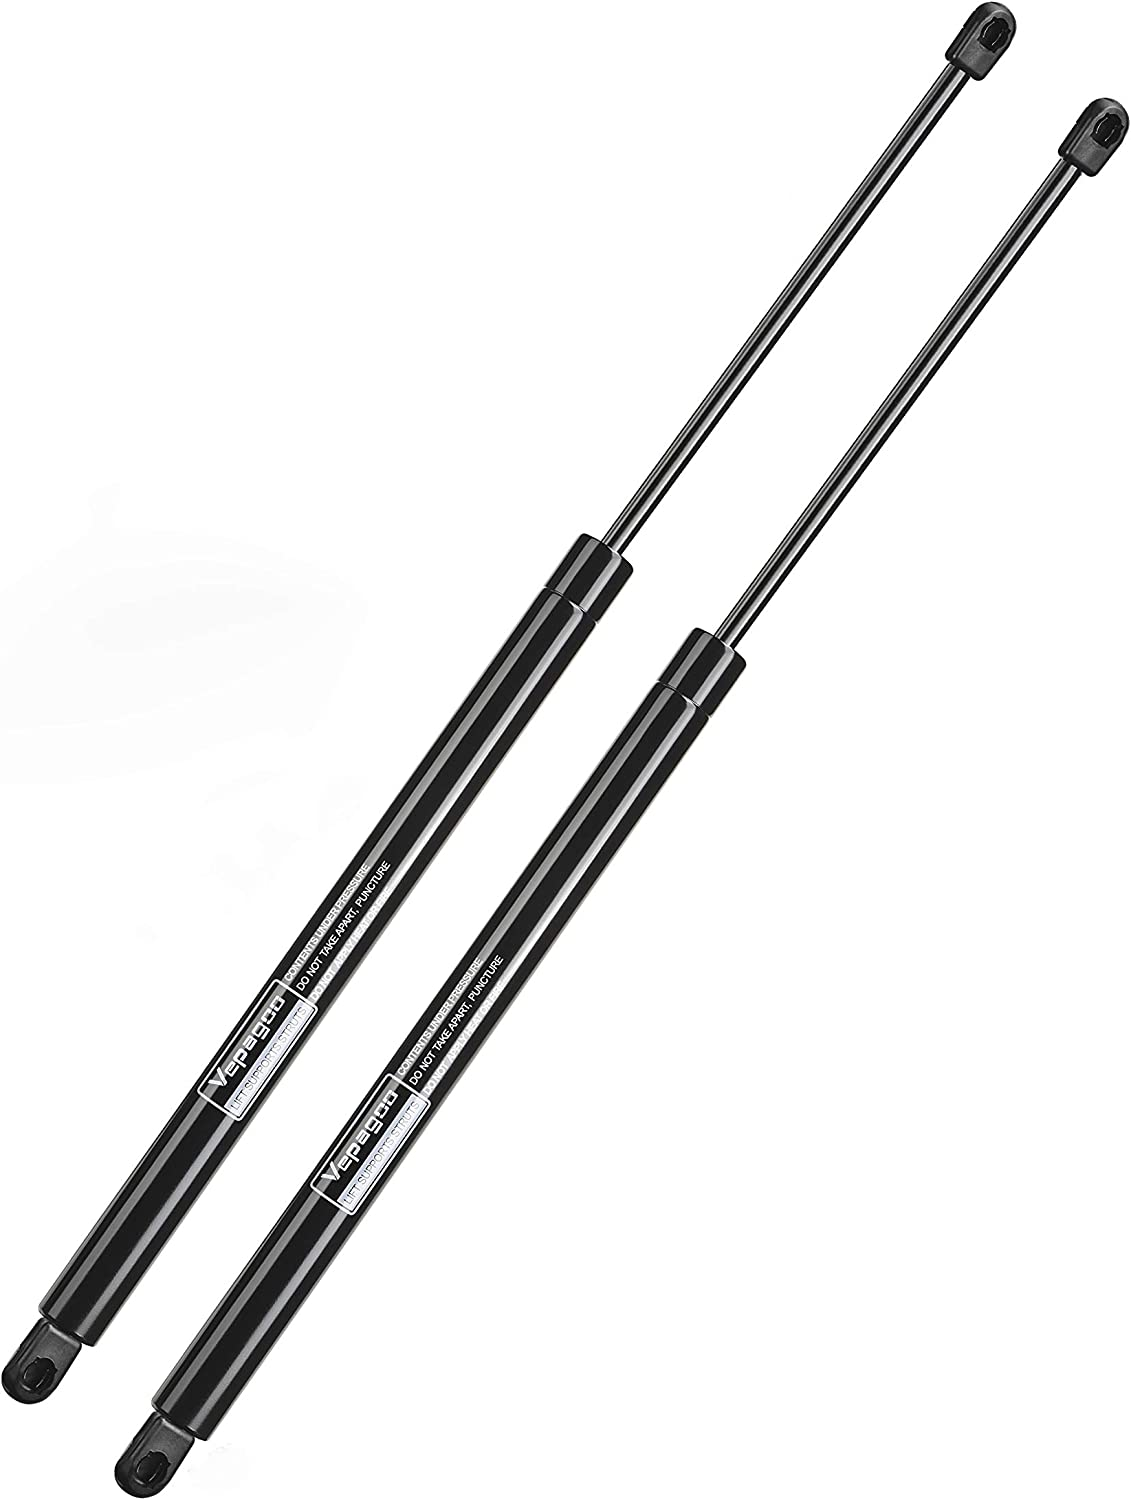 Camper Lift Support 20in Force 120 lbs Gas Springs Props